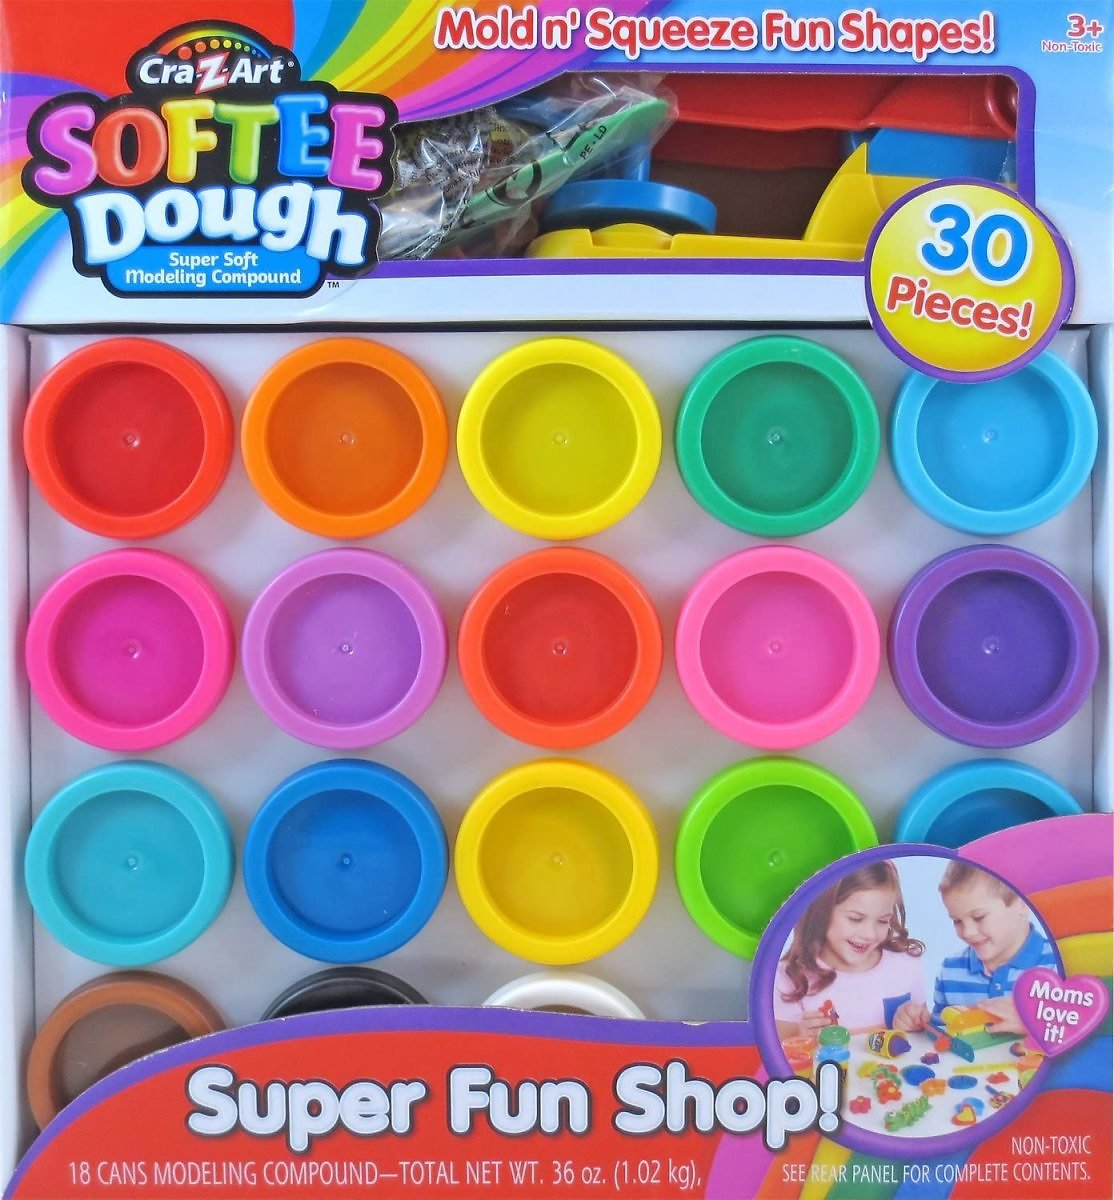 30 Pcs - Super Rainbow Softee Dough Color Pack Set